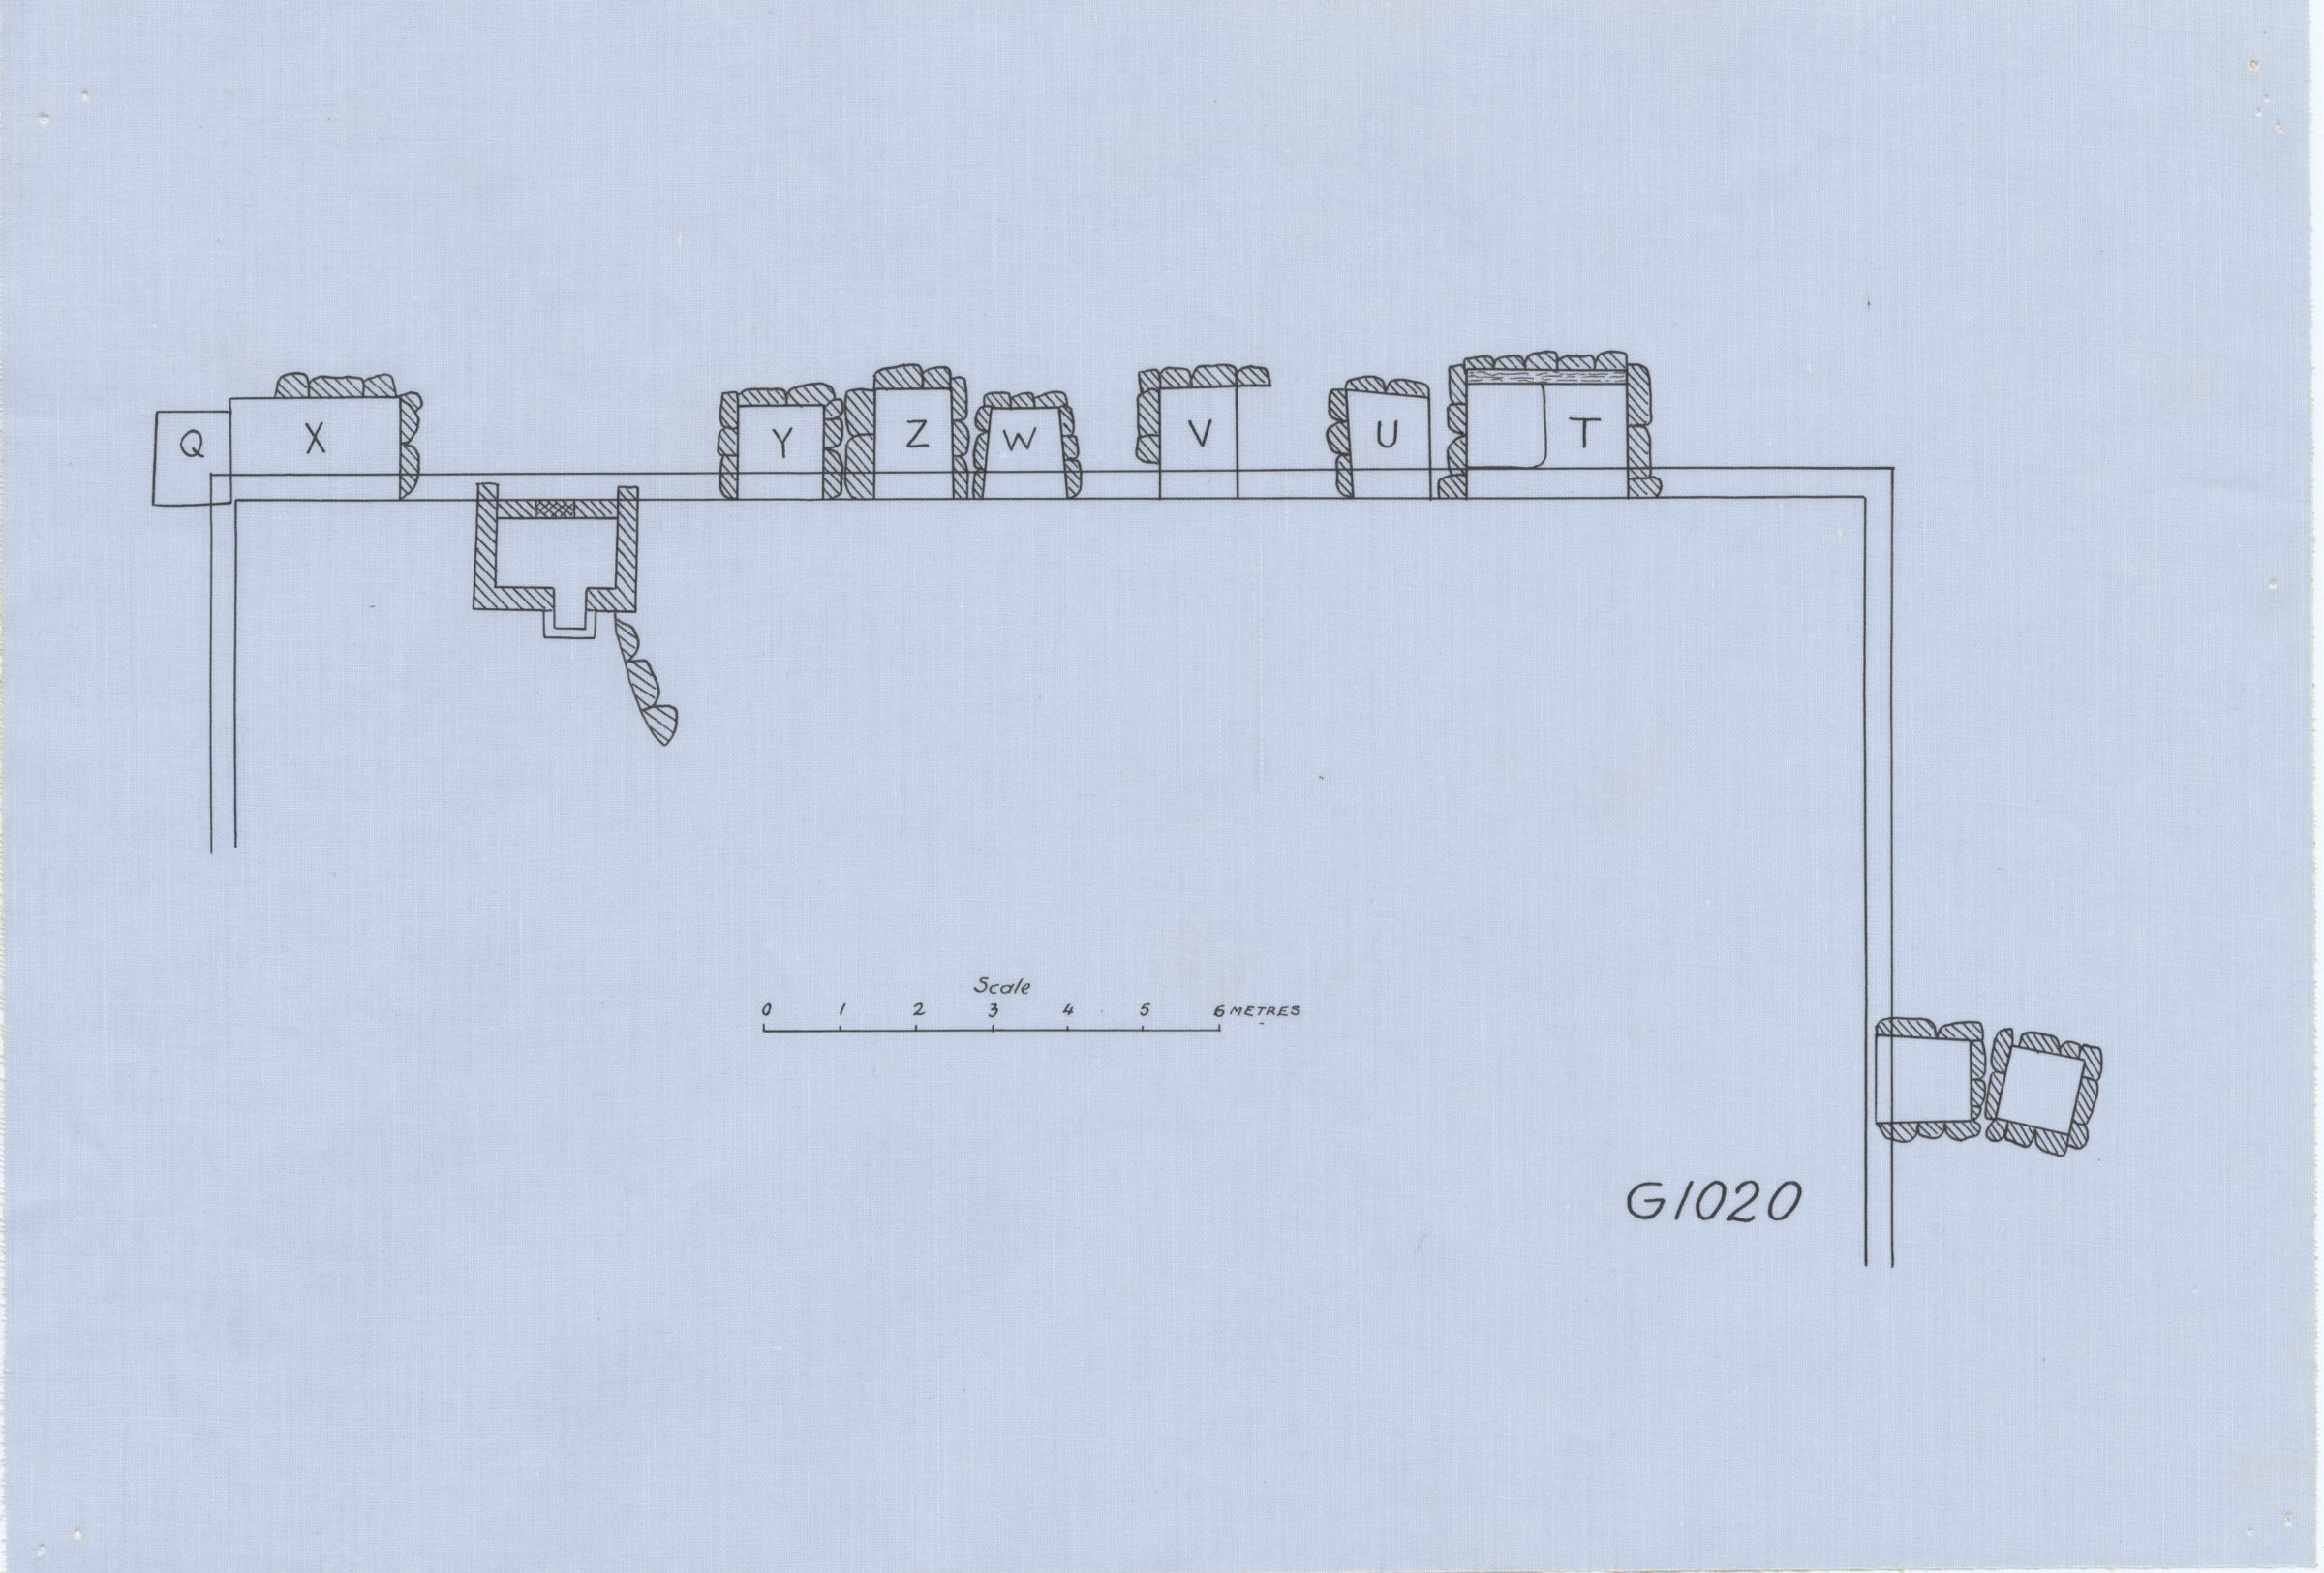 Maps and plans: G 1020, Plan